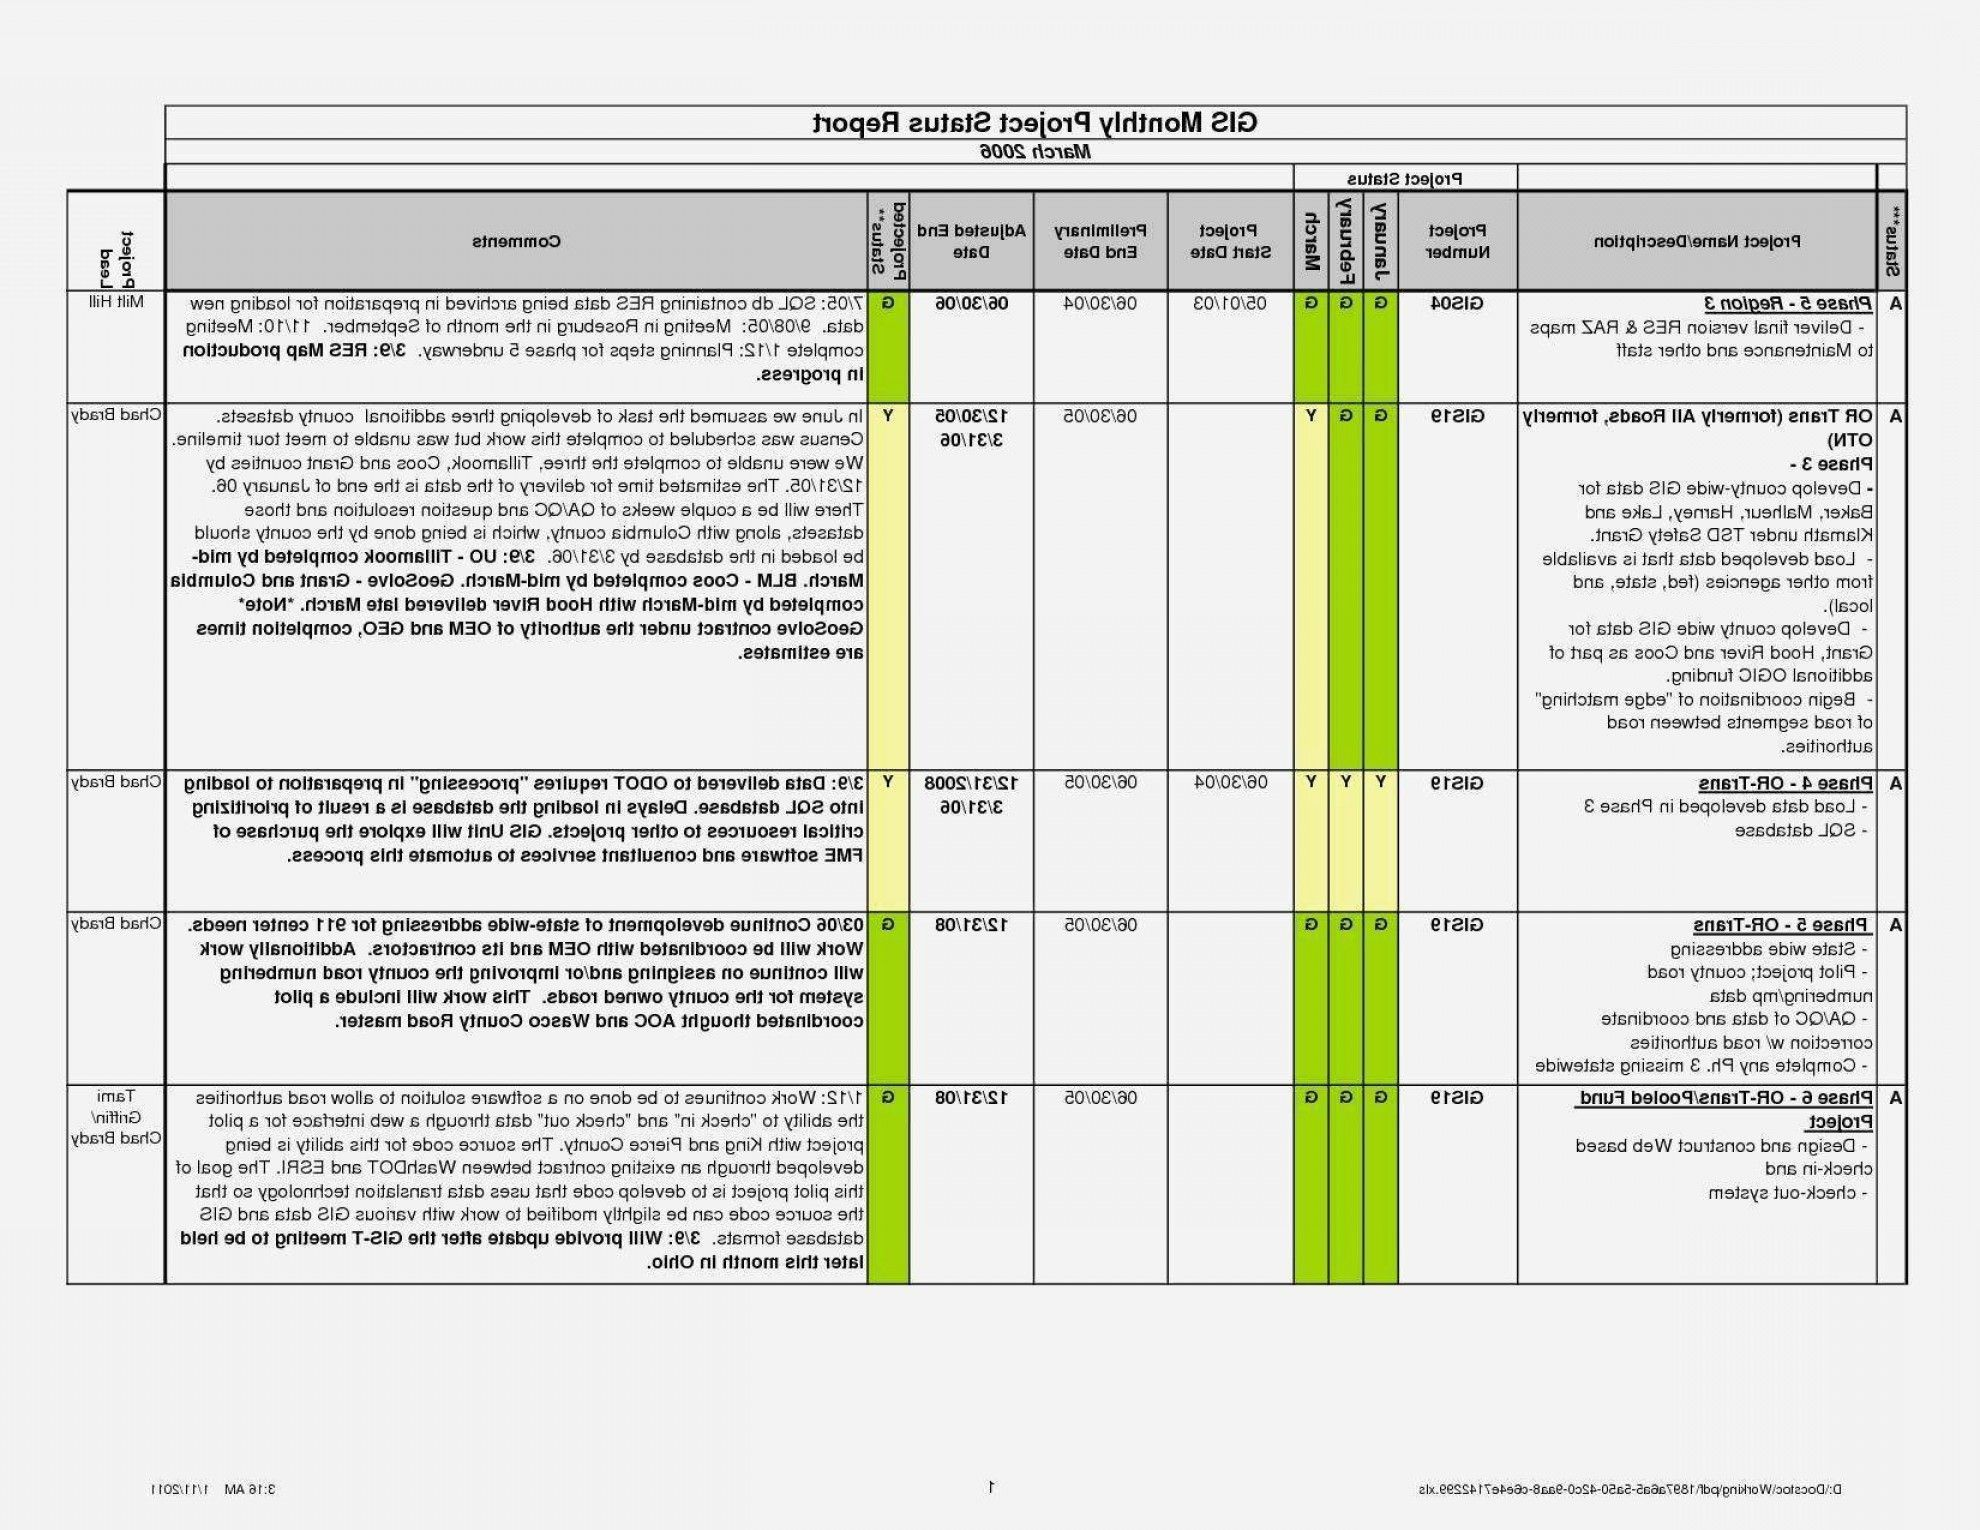 002 Awesome Project Management Progres Report Example  Statu Template Monthly Weekly PptFull